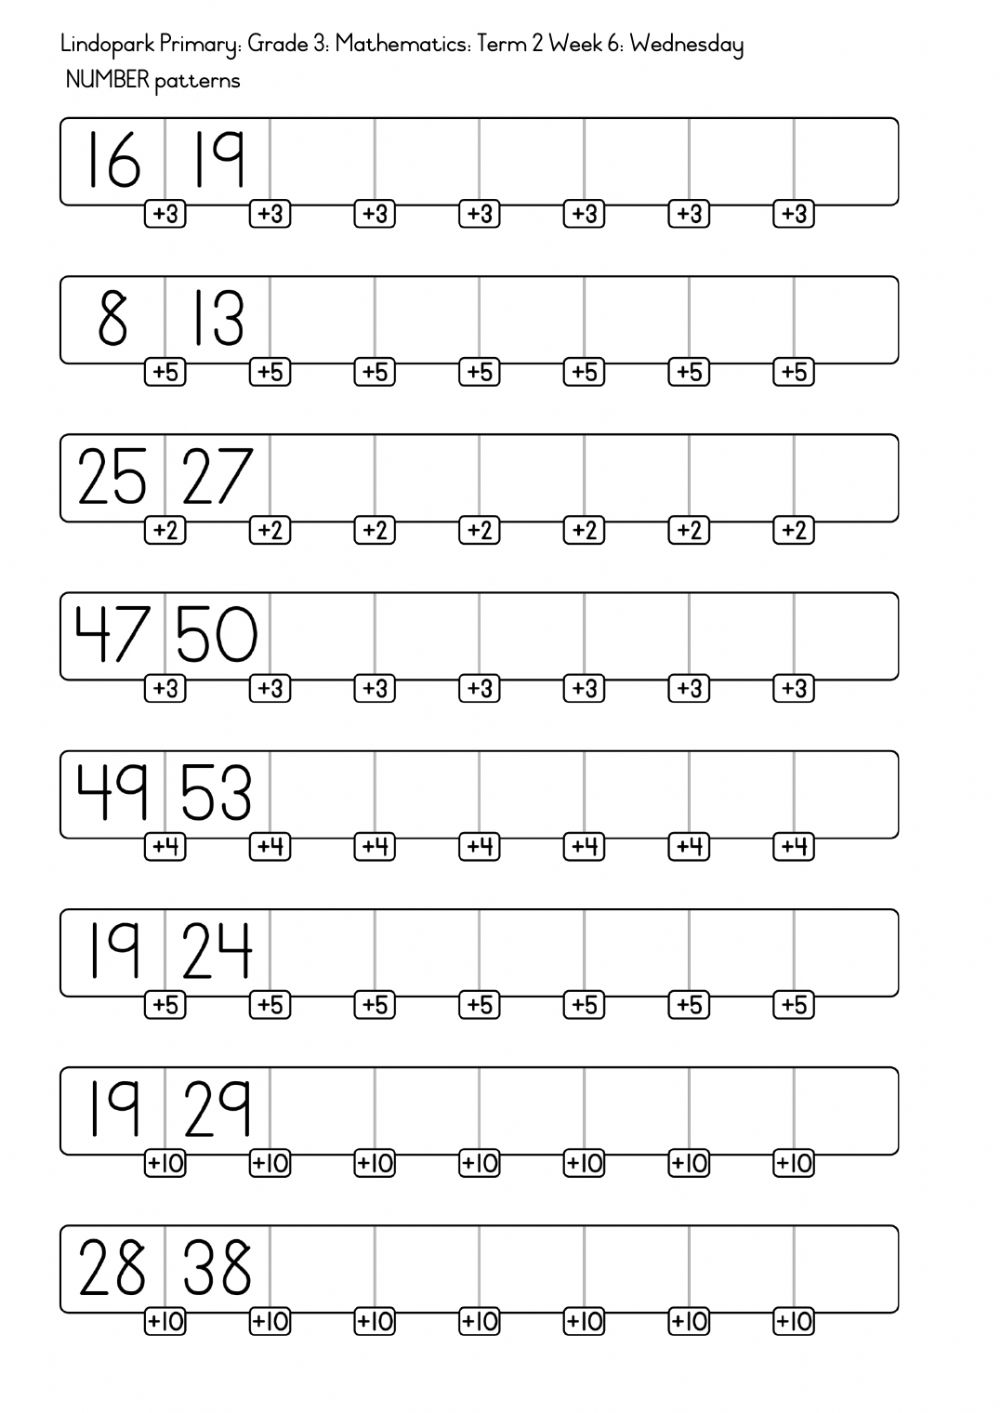 hight resolution of Grade 3 Mathematics: Term 2 Week 6: Number patterns: Wednesday worksheet